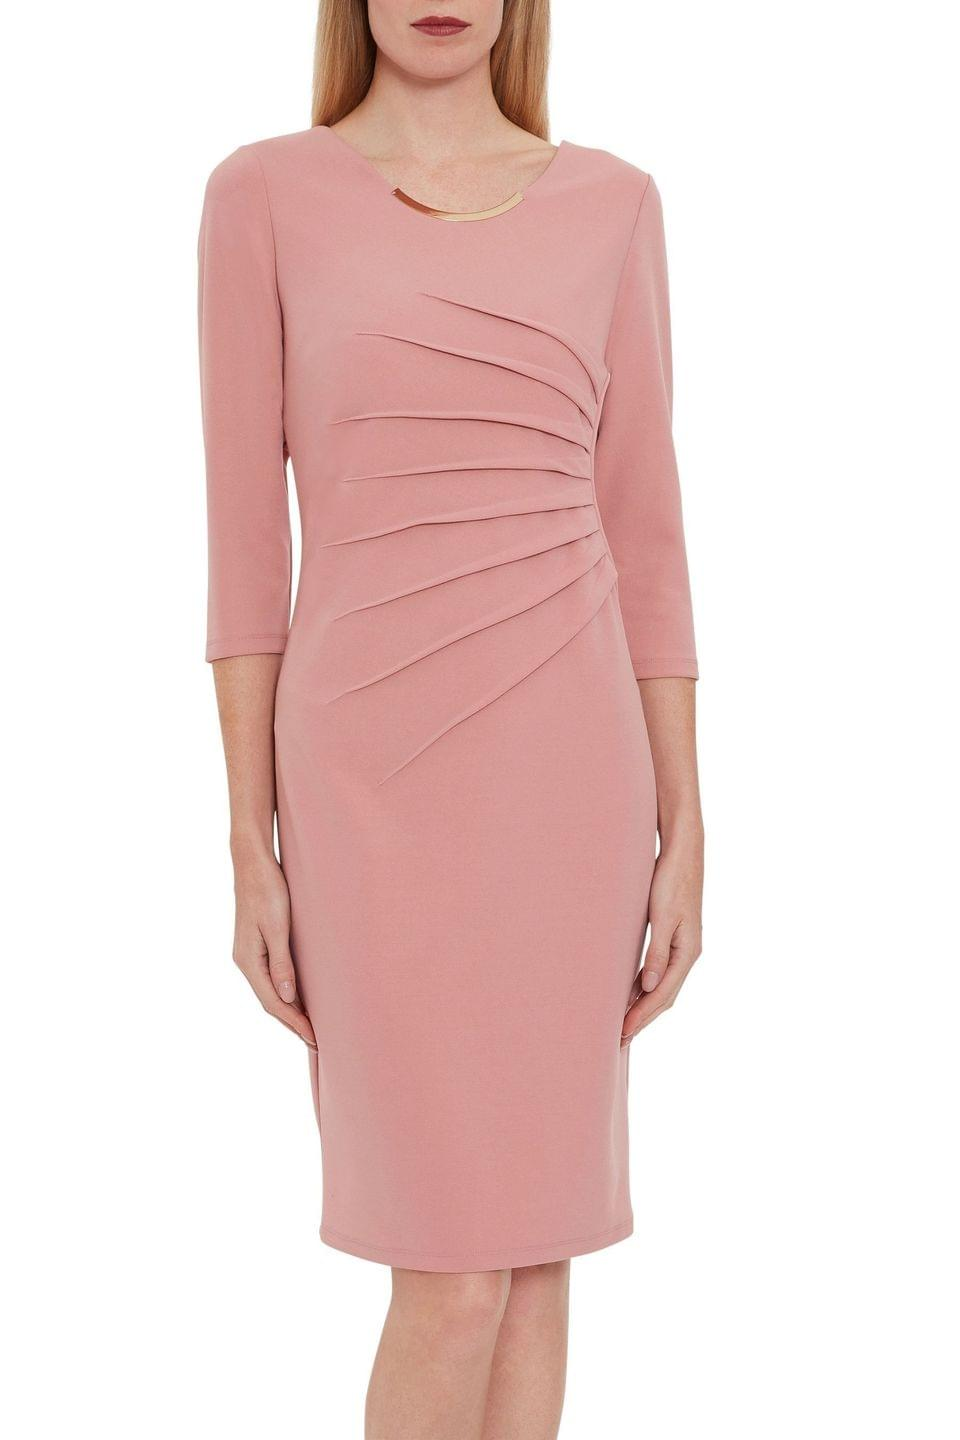 Women's Gina Bacconi Pink Ellis Scuba Crepe Dress